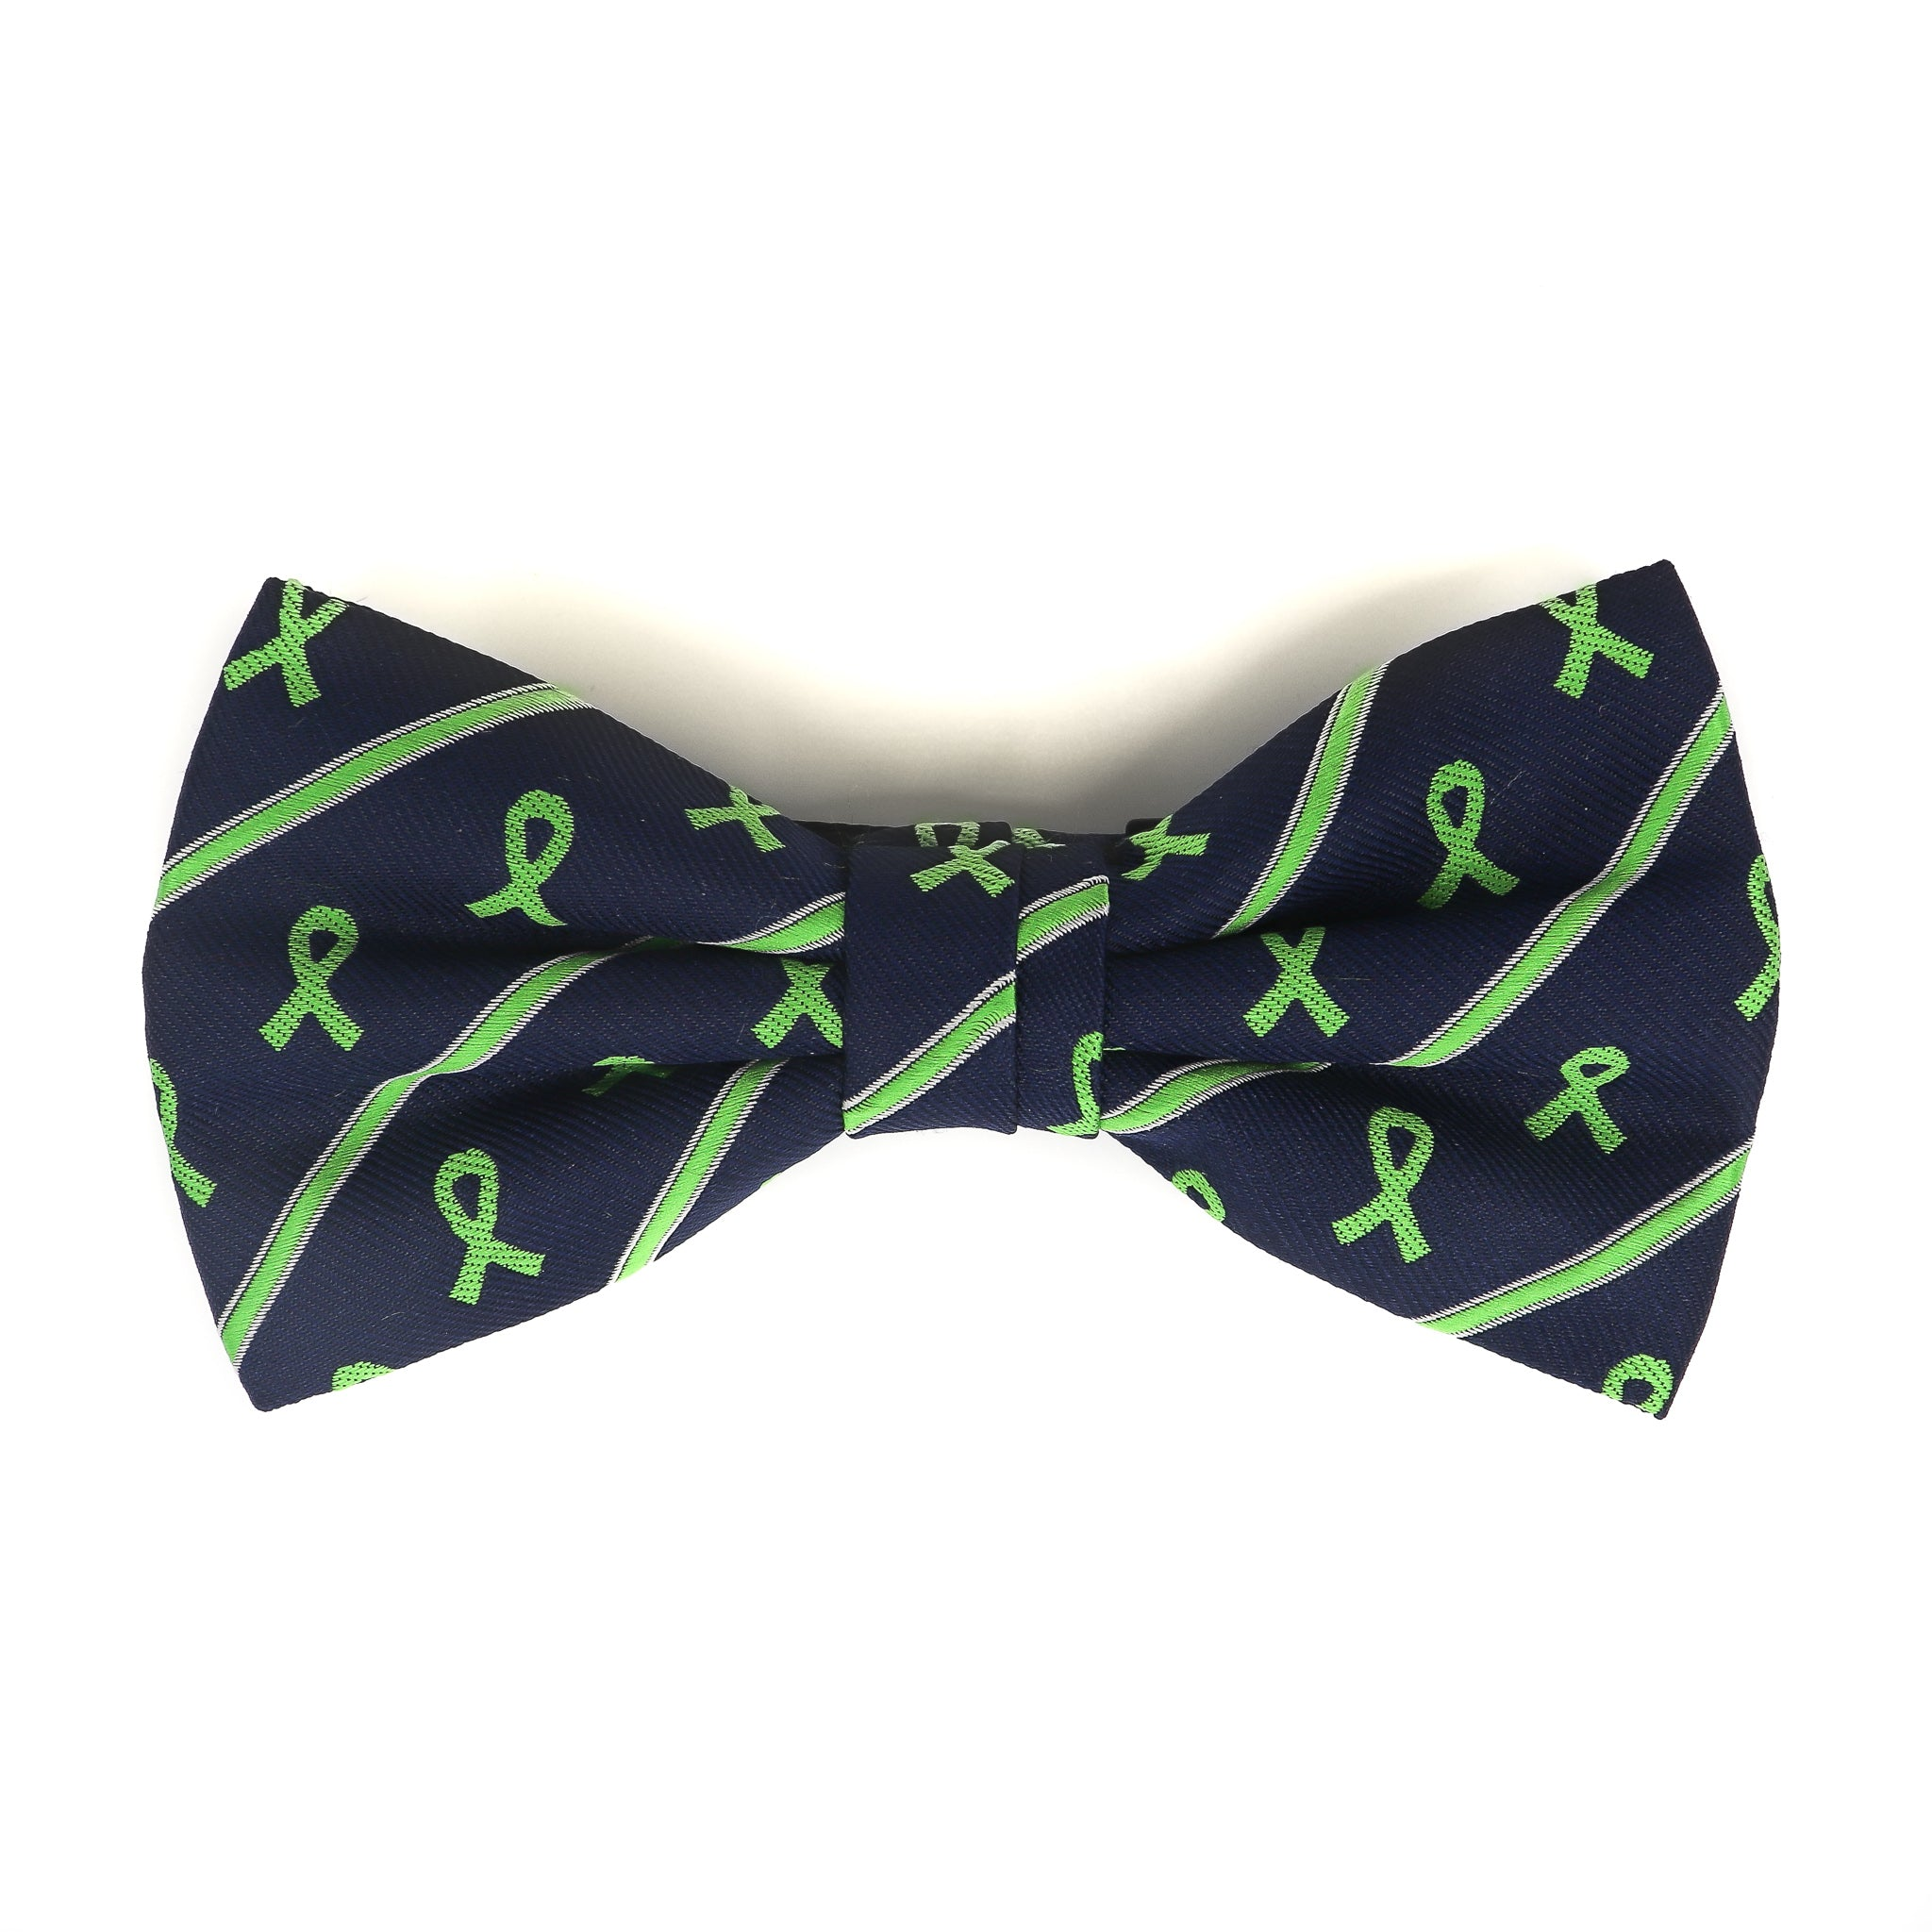 Cerebral Palsy Awareness Bow Tie